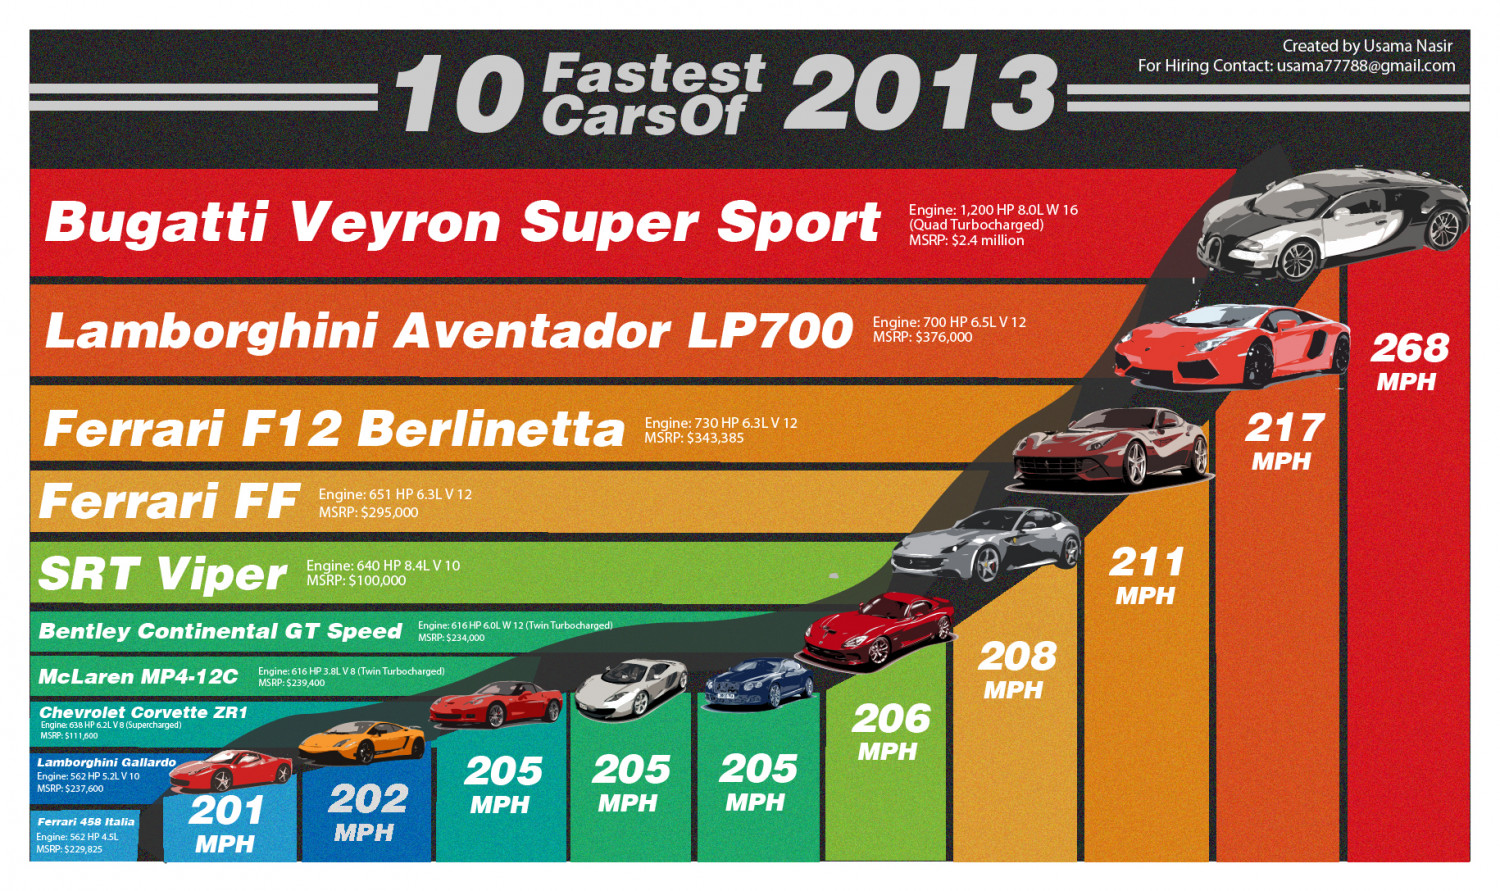 10 Fastest Cars of 2013 Infographic